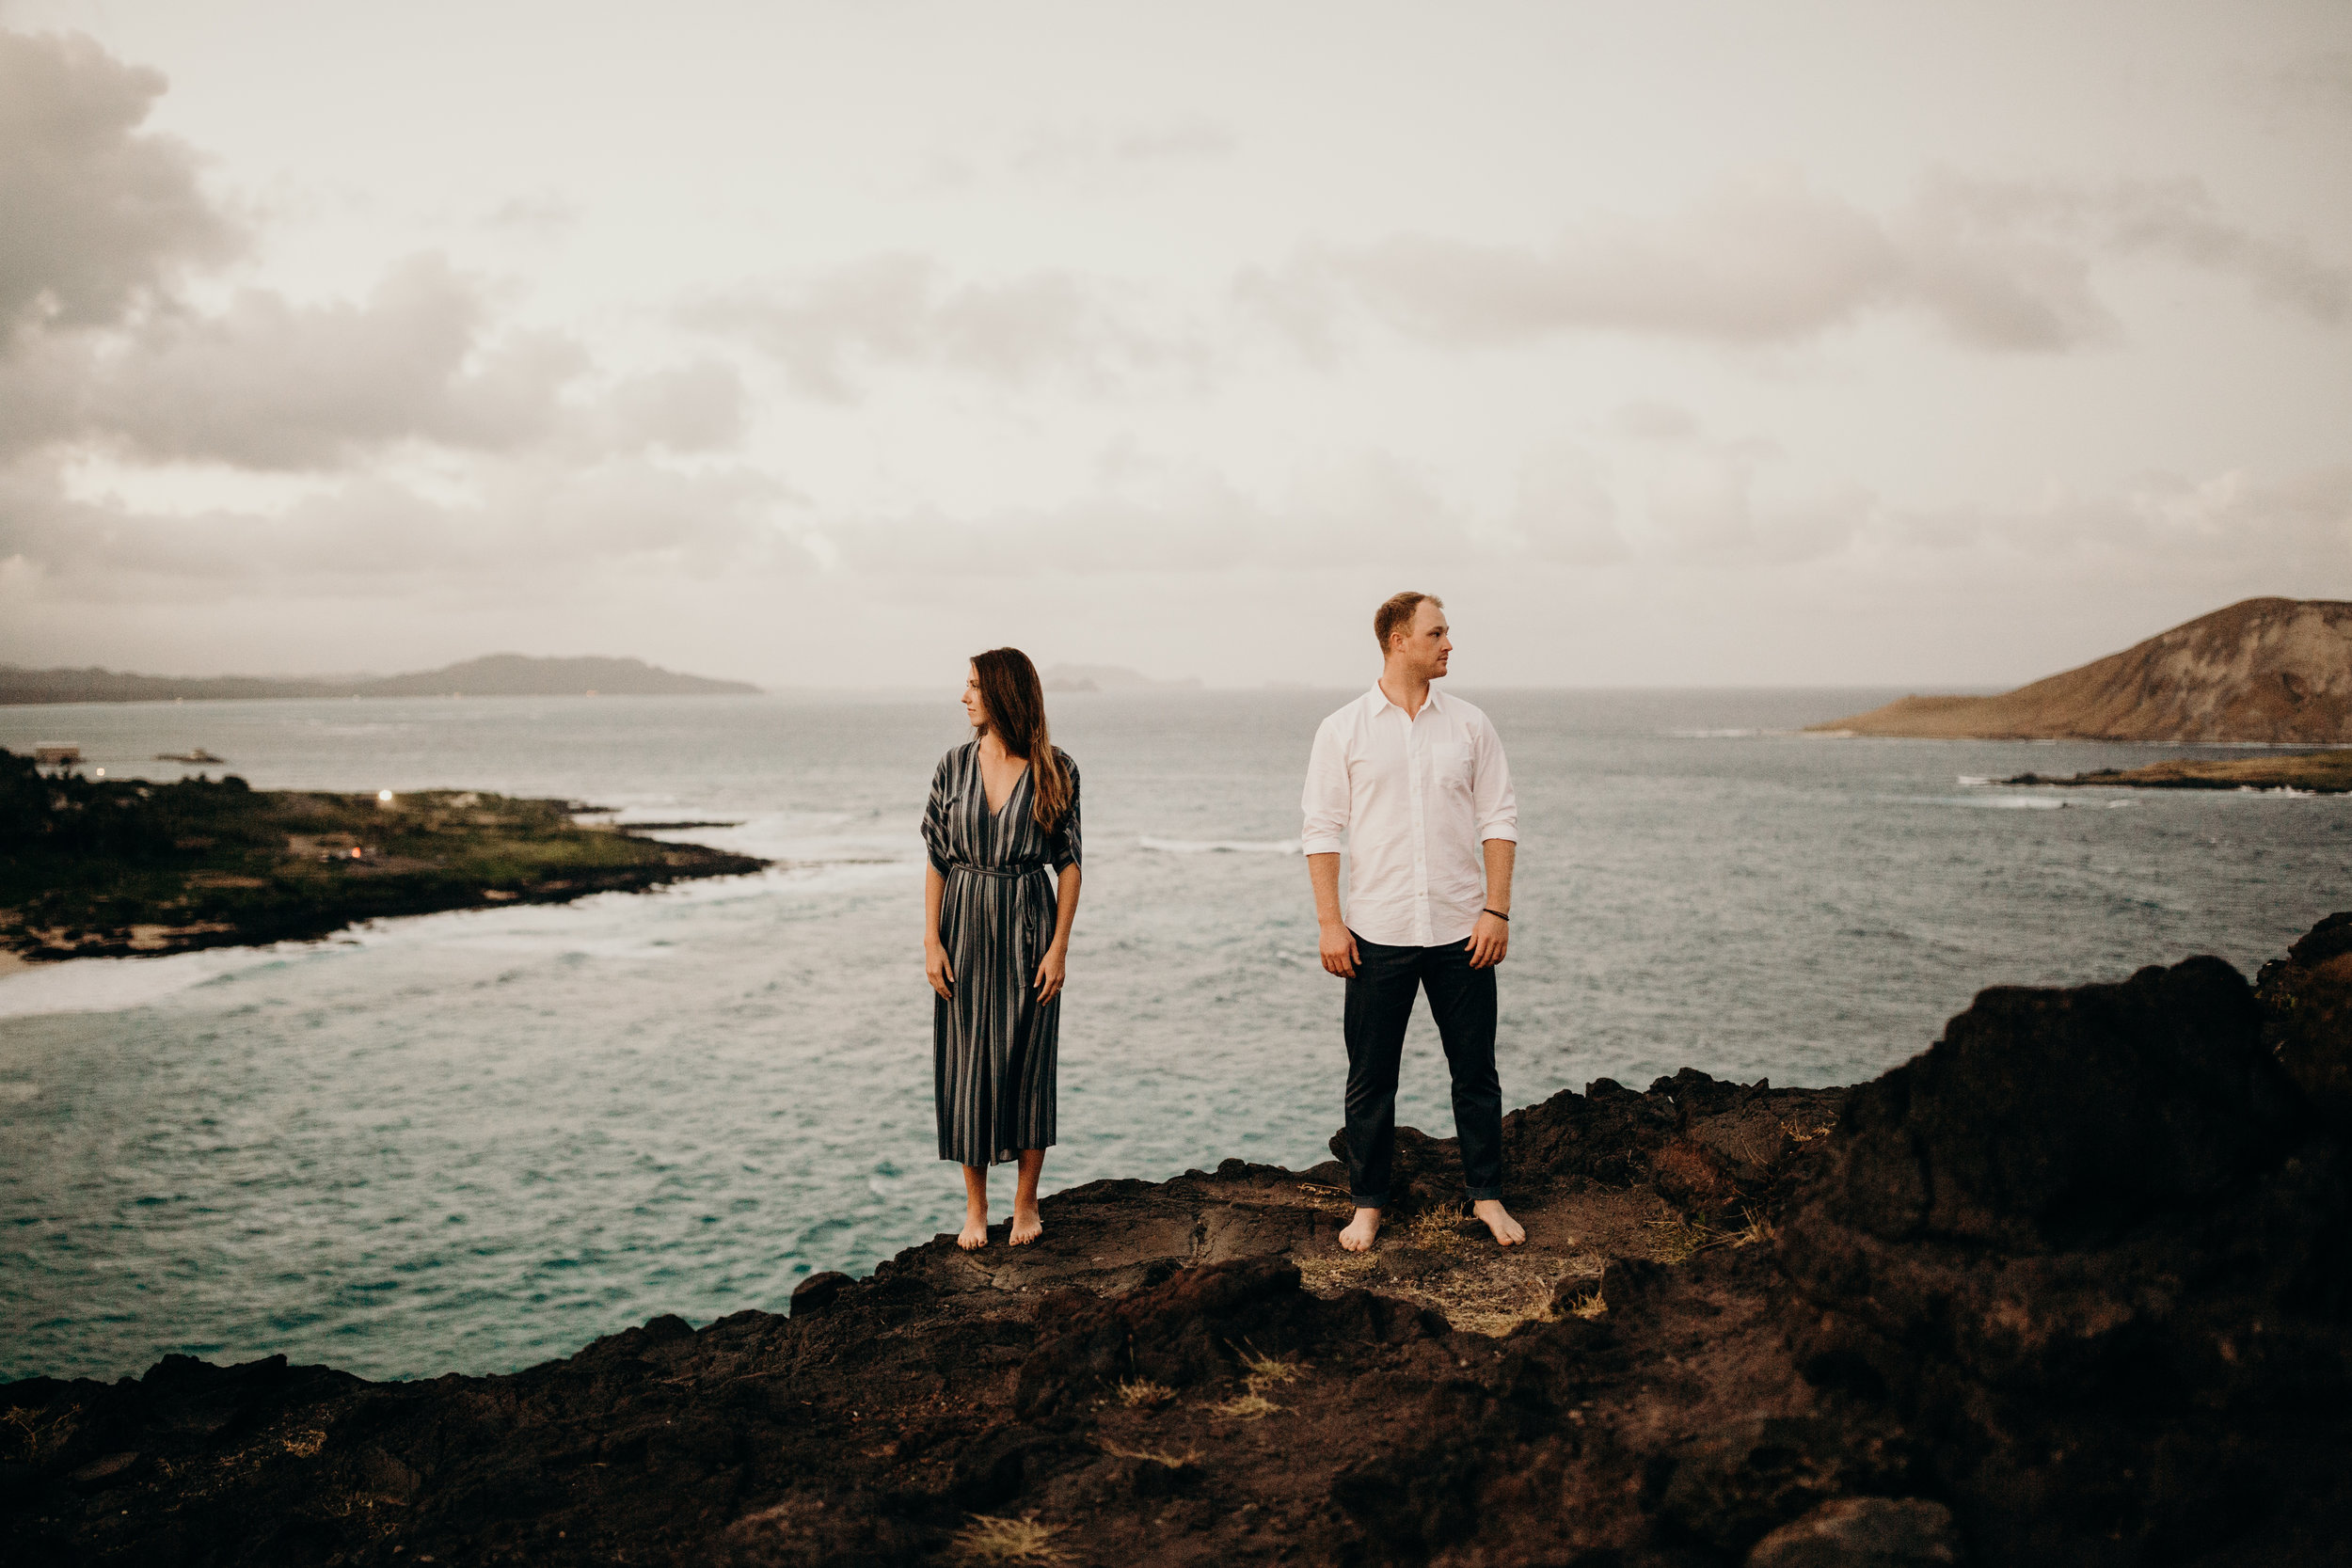 hawaii-engagement-photographer-keani-bakula-makapuu-beach-35.jpg